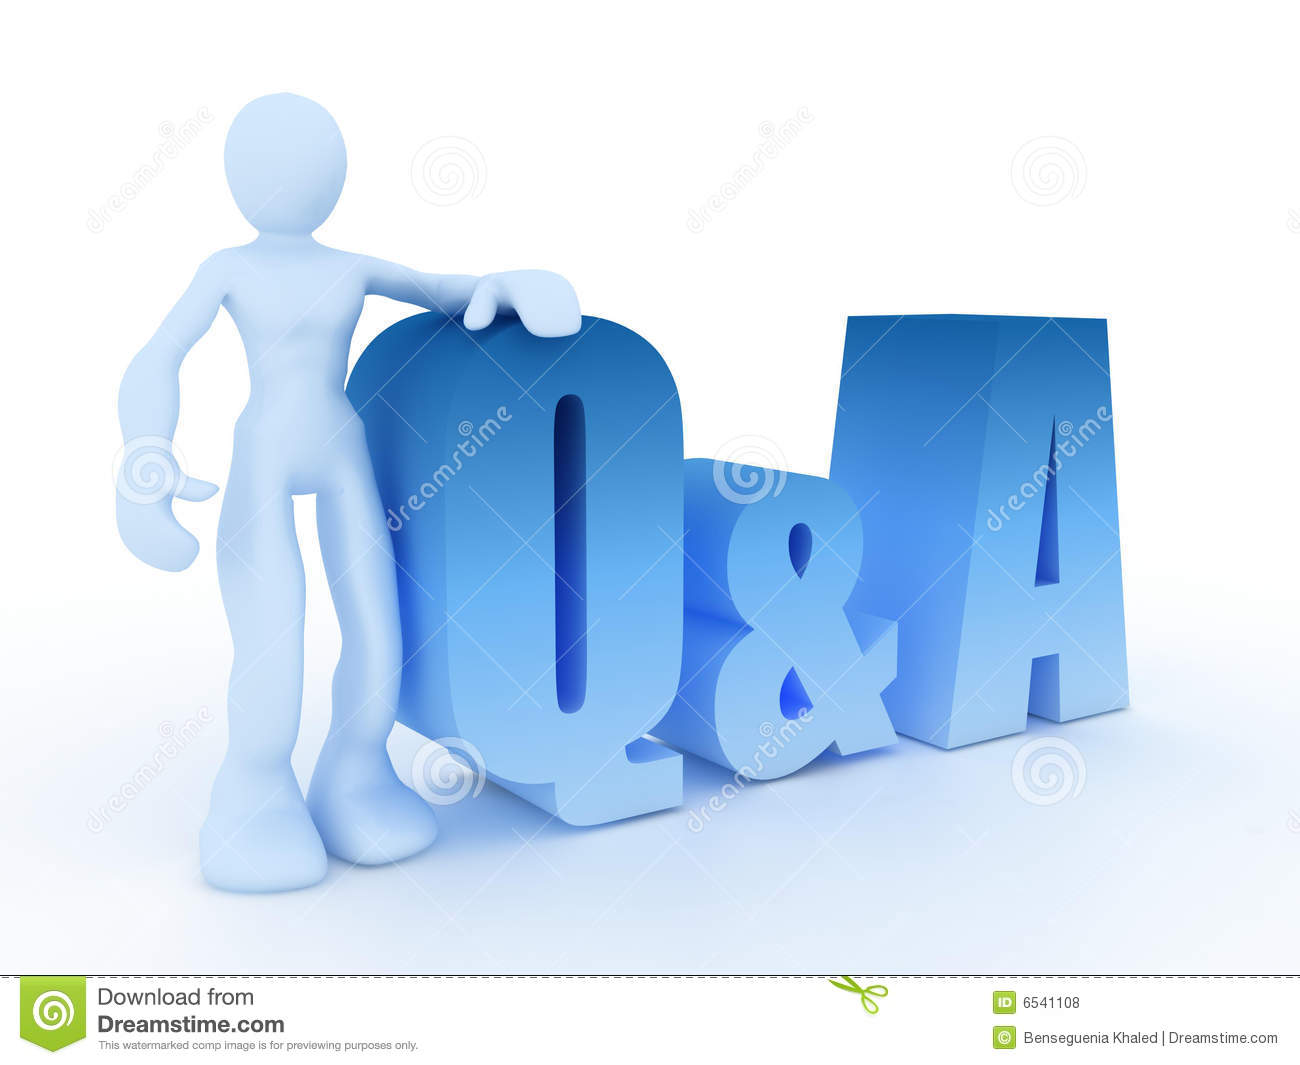 Royalty Free Stock Photos  Questions and answersQuestions And Answers Session